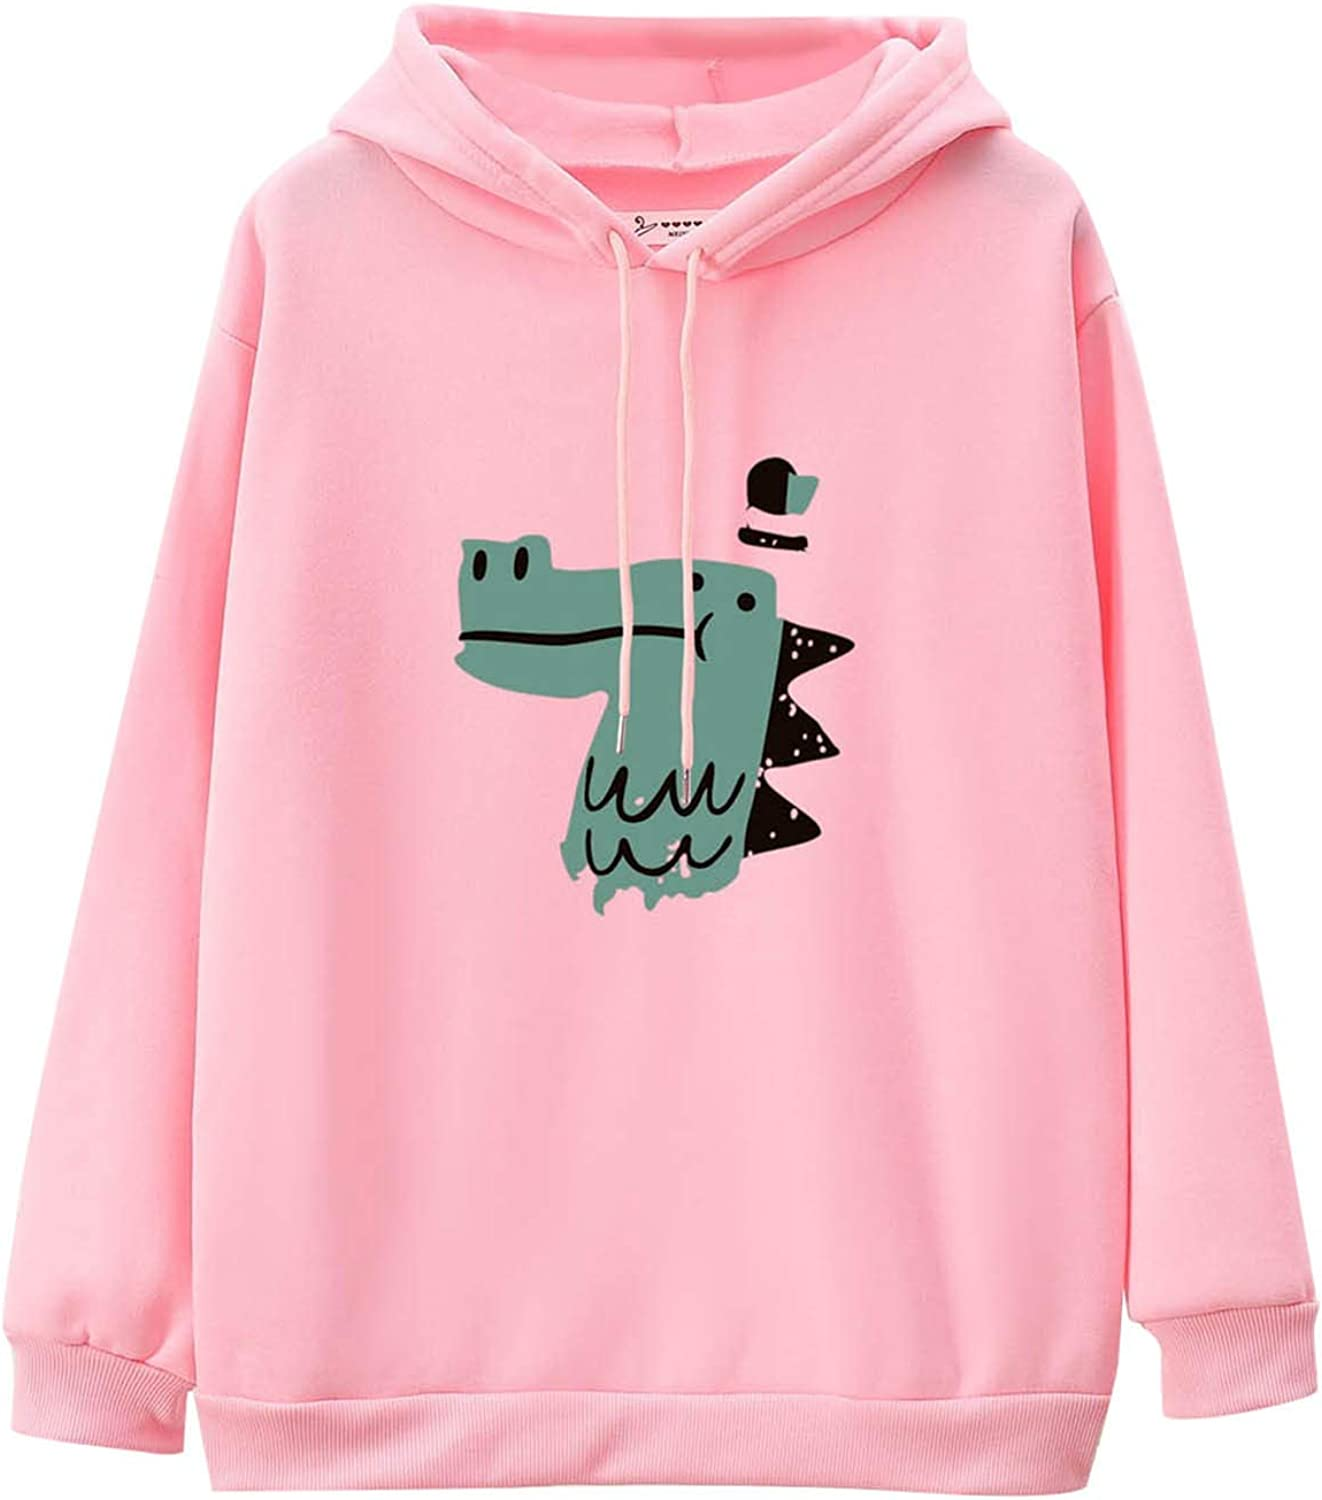 Pullover for Womens Solid Color Long Hoodie NEW before selling Sleeve Dinos Cartoon Fort Worth Mall